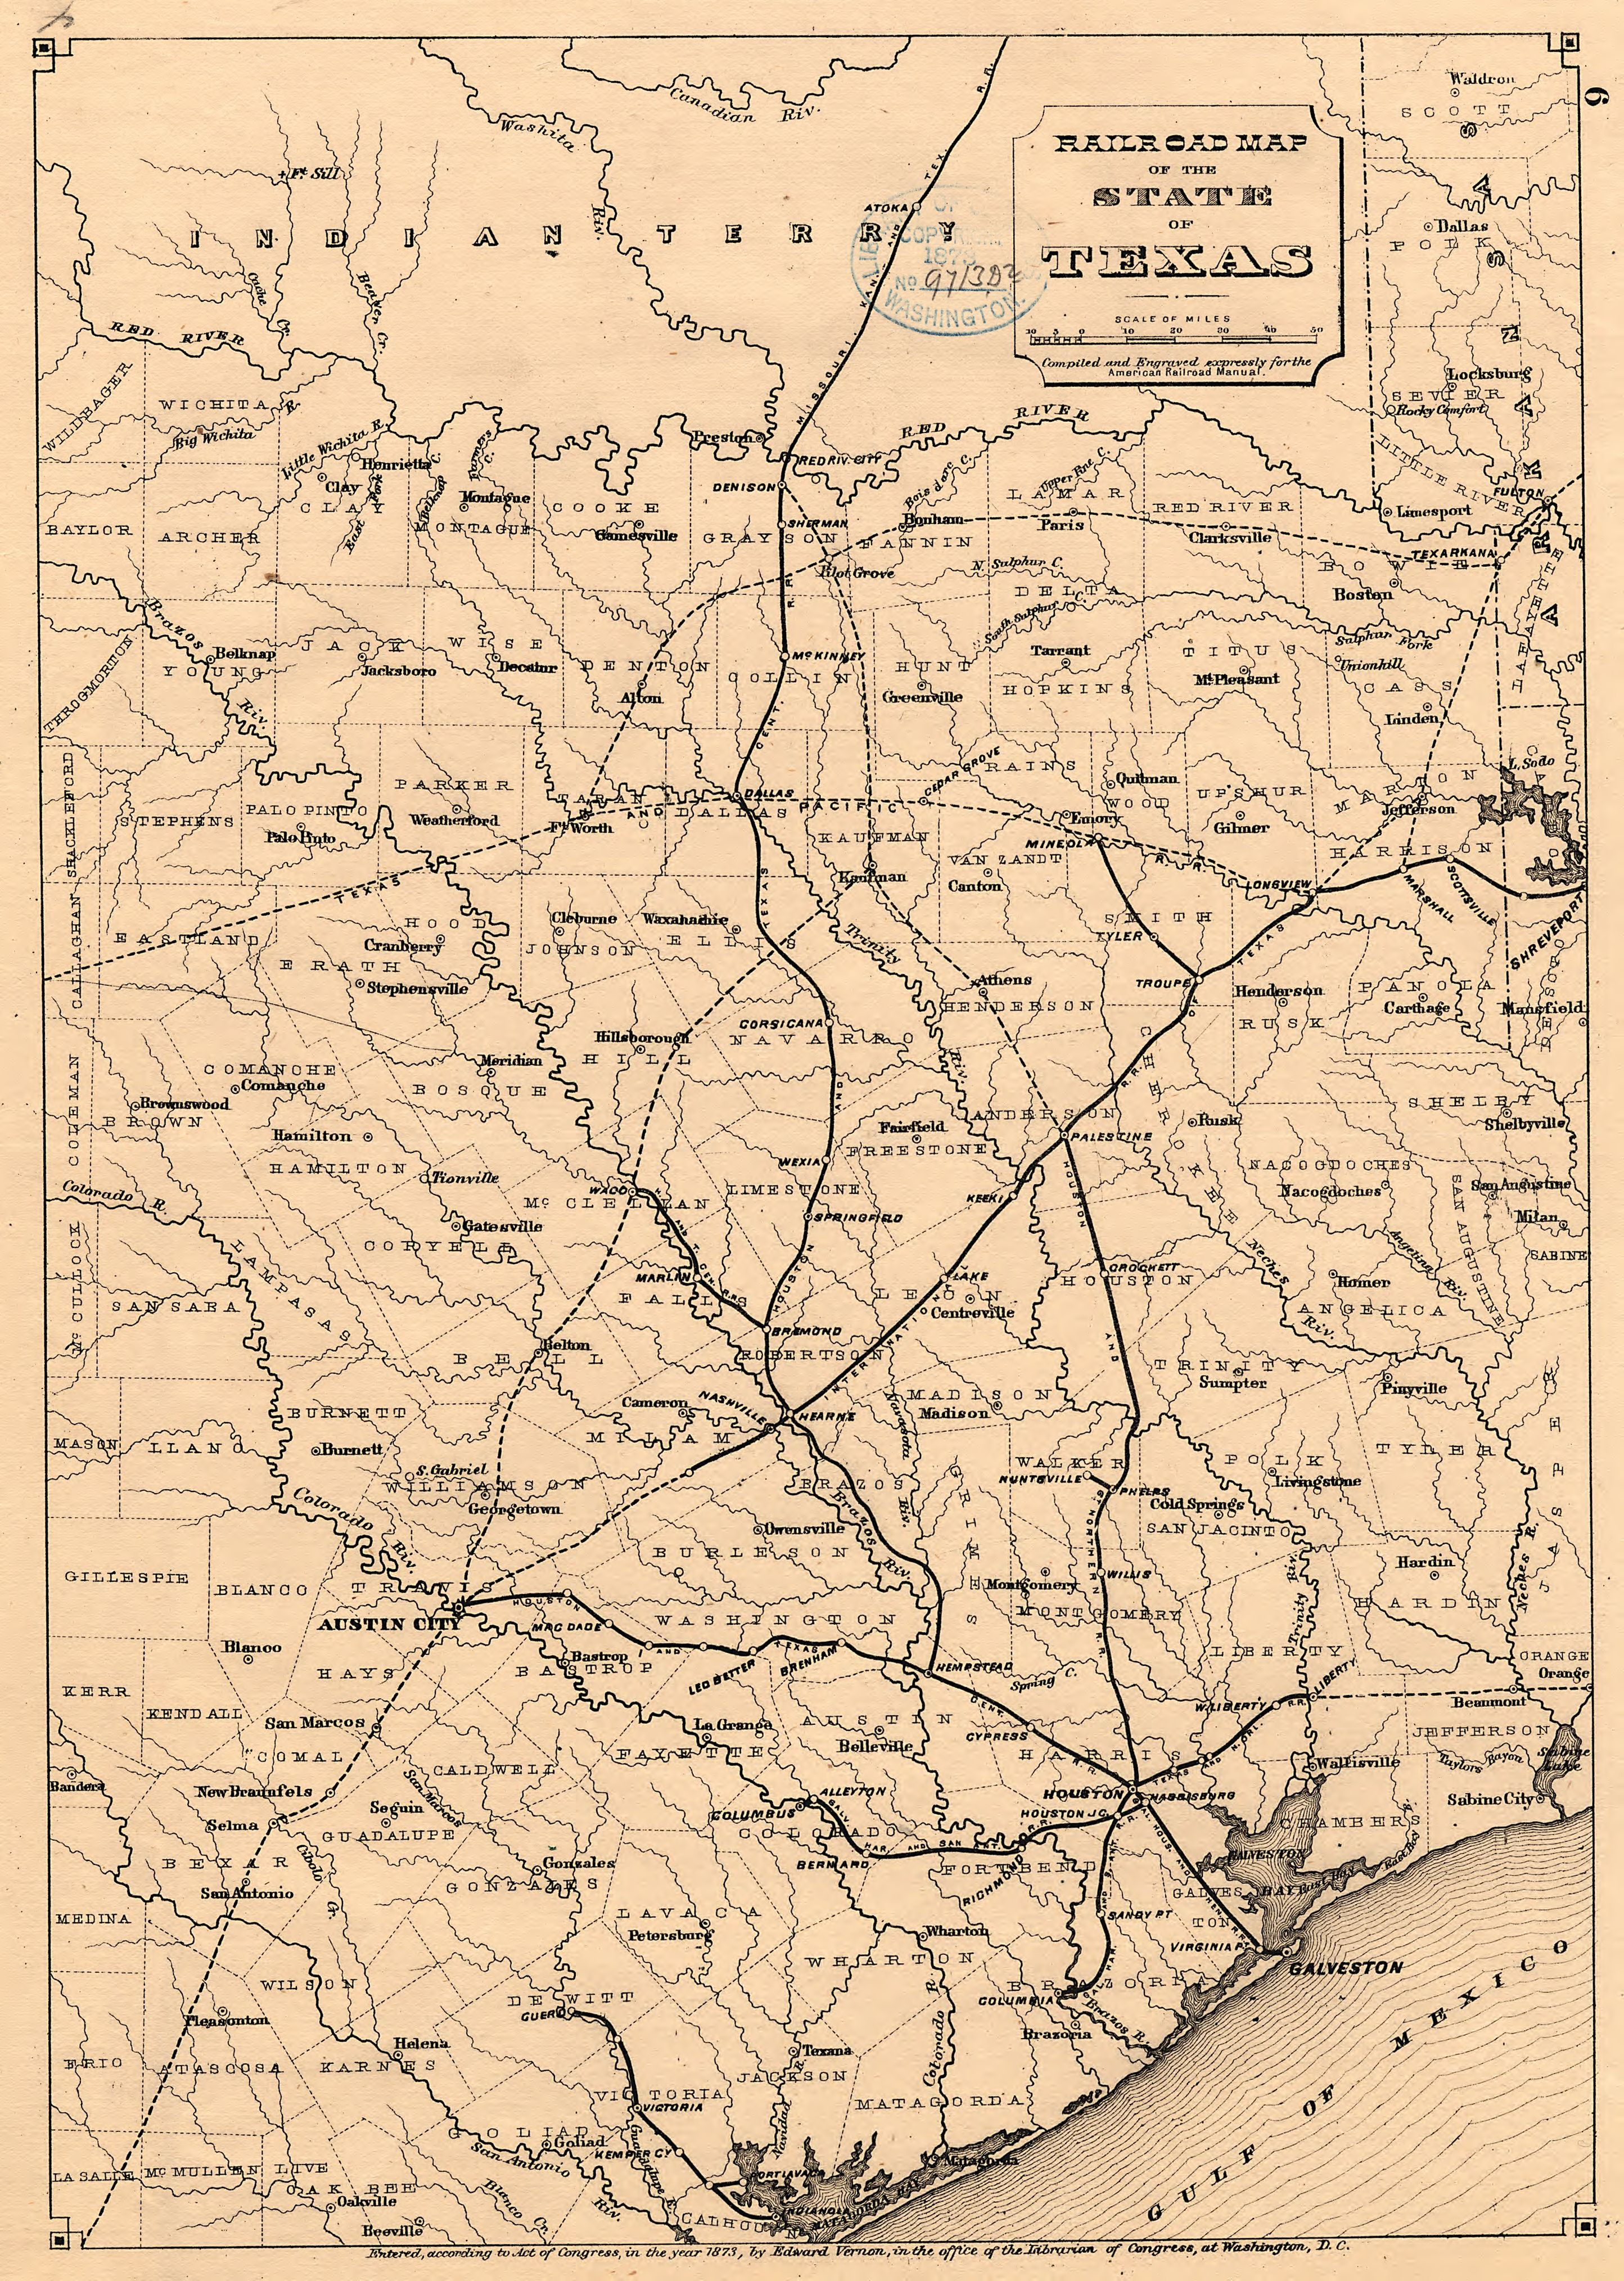 Railroad Map Of Texas.File Railroad Map Of The State Of Texas Loc 2001622095 Jpg